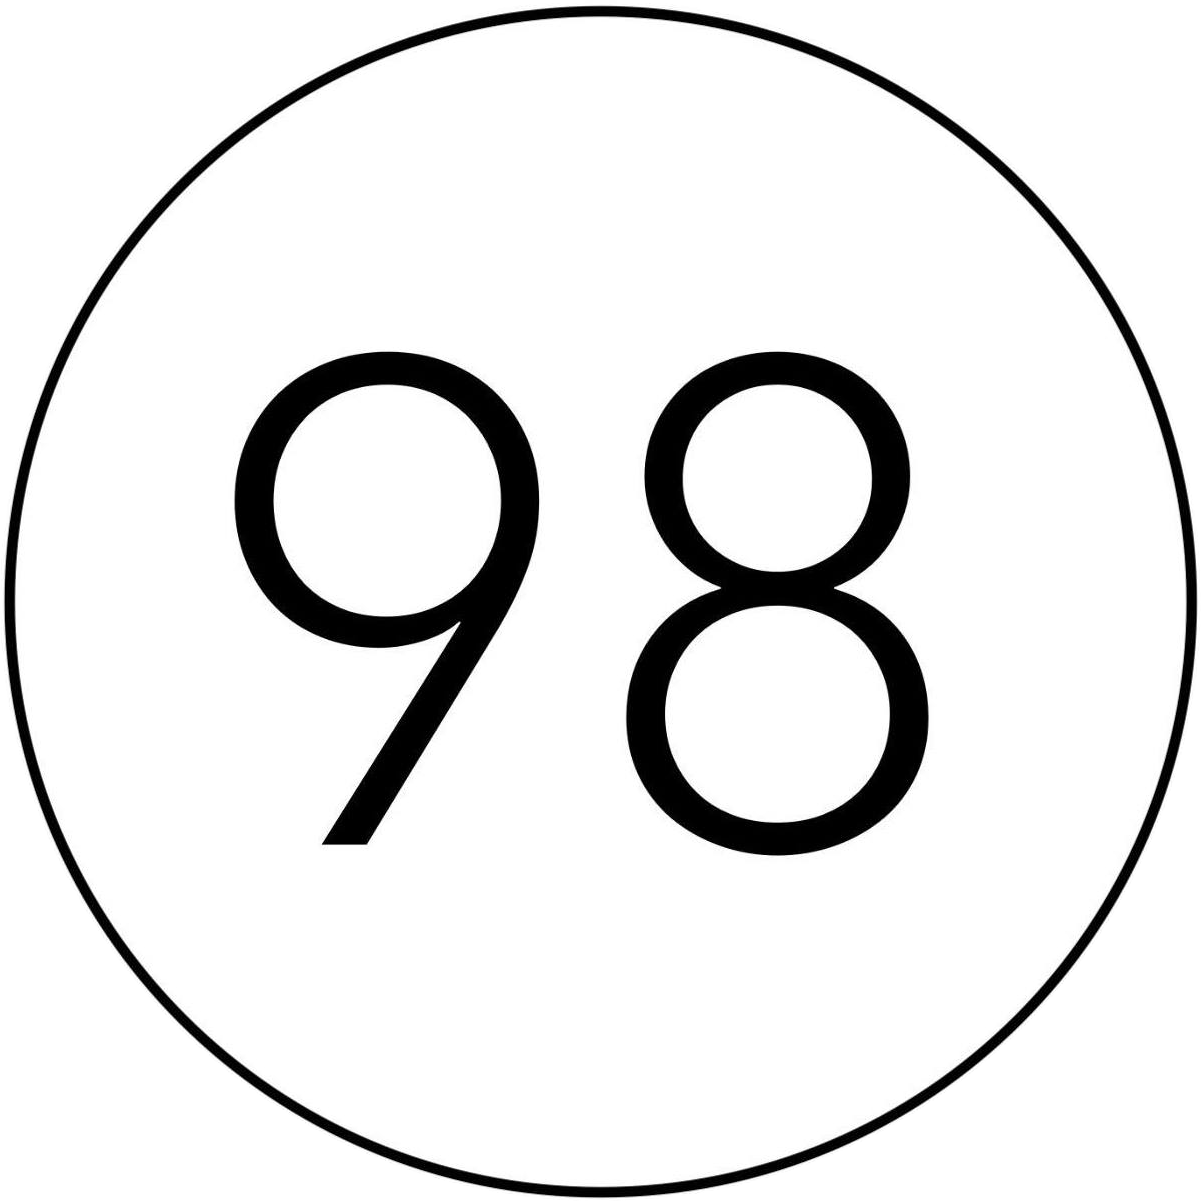 98 Marketing Logo